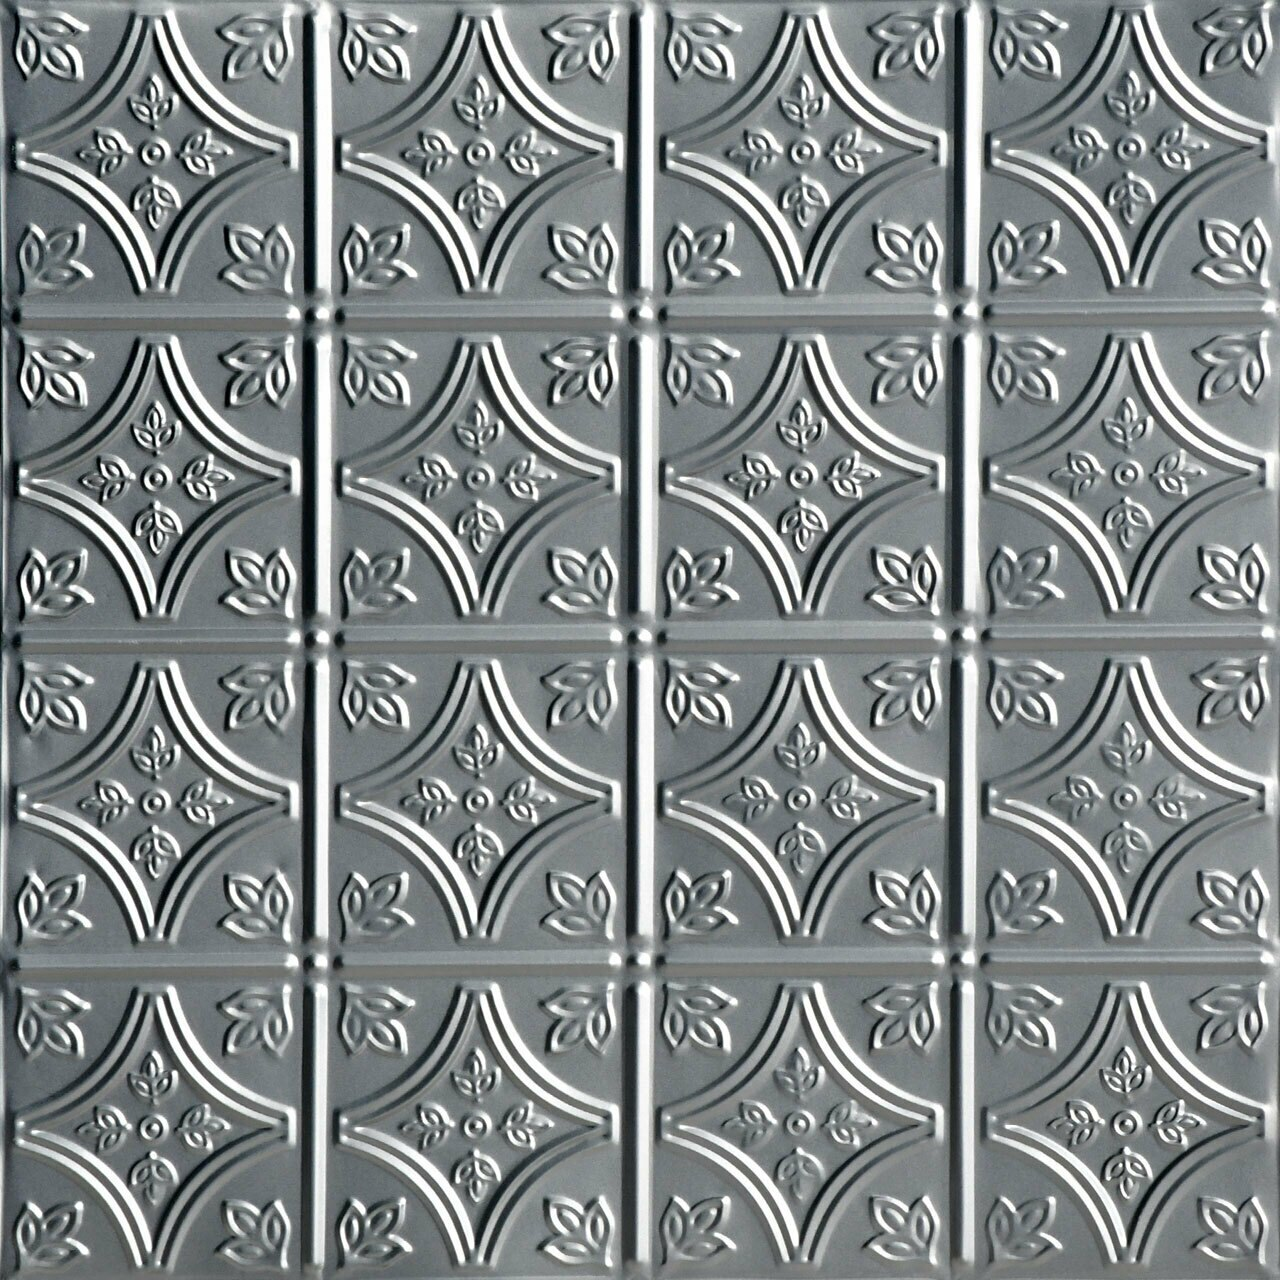 Shanko - Tin Plated Steel - Wall and Ceiling Patterns - #209